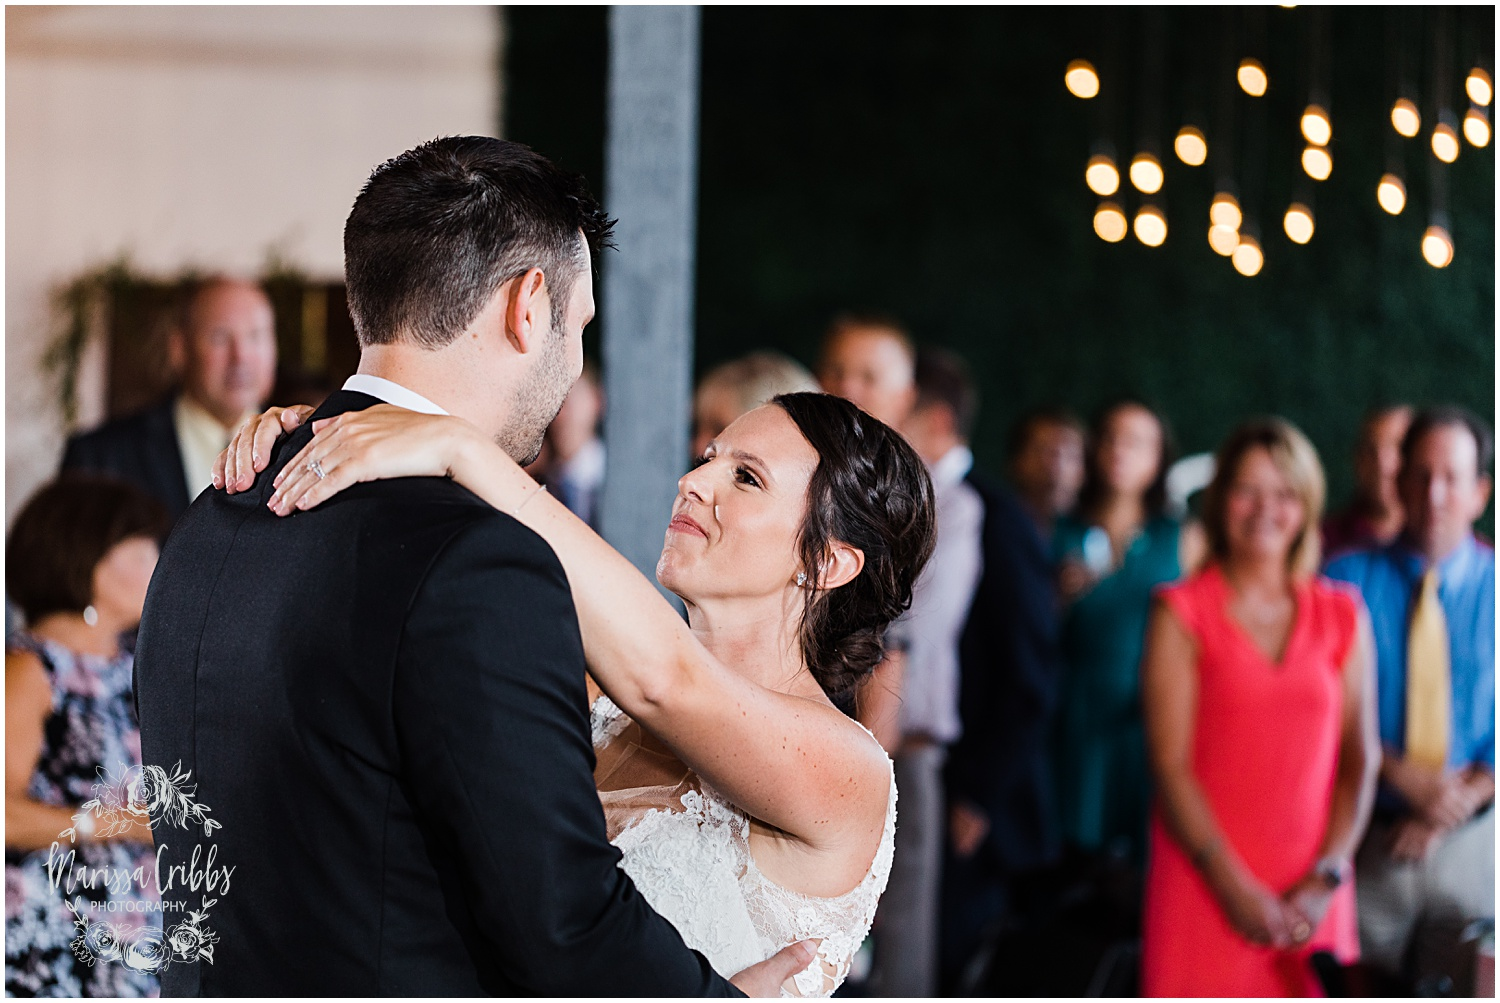 KELLY & MITCH MARRIED BLOG | MARISSA CRIBBS PHOTOGRAPHY | THE EVERLY EVENT SPACE_8906.jpg